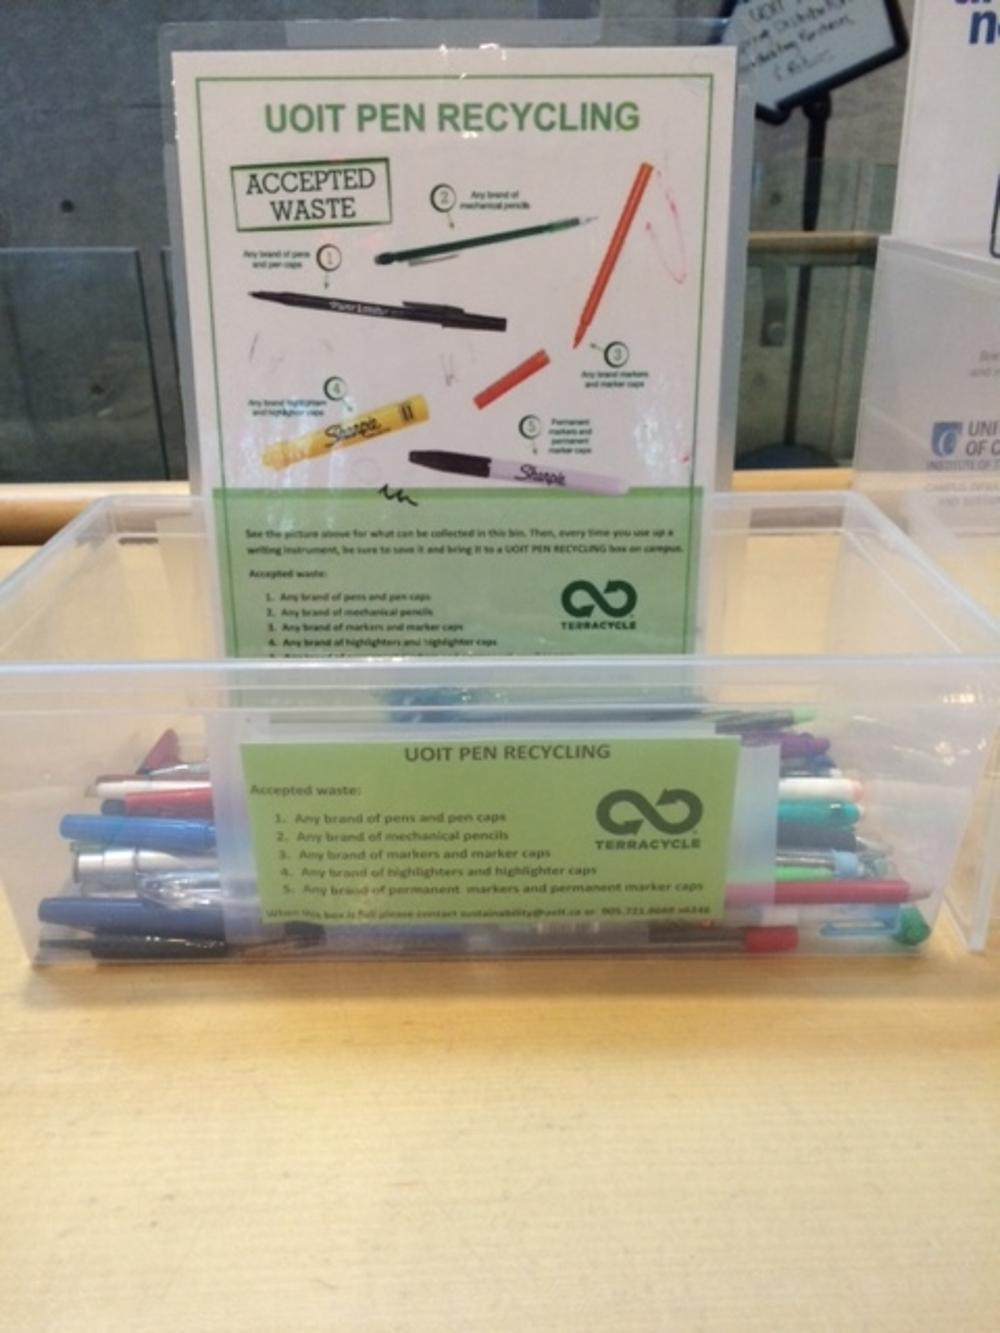 pen recycling box at the north campus library